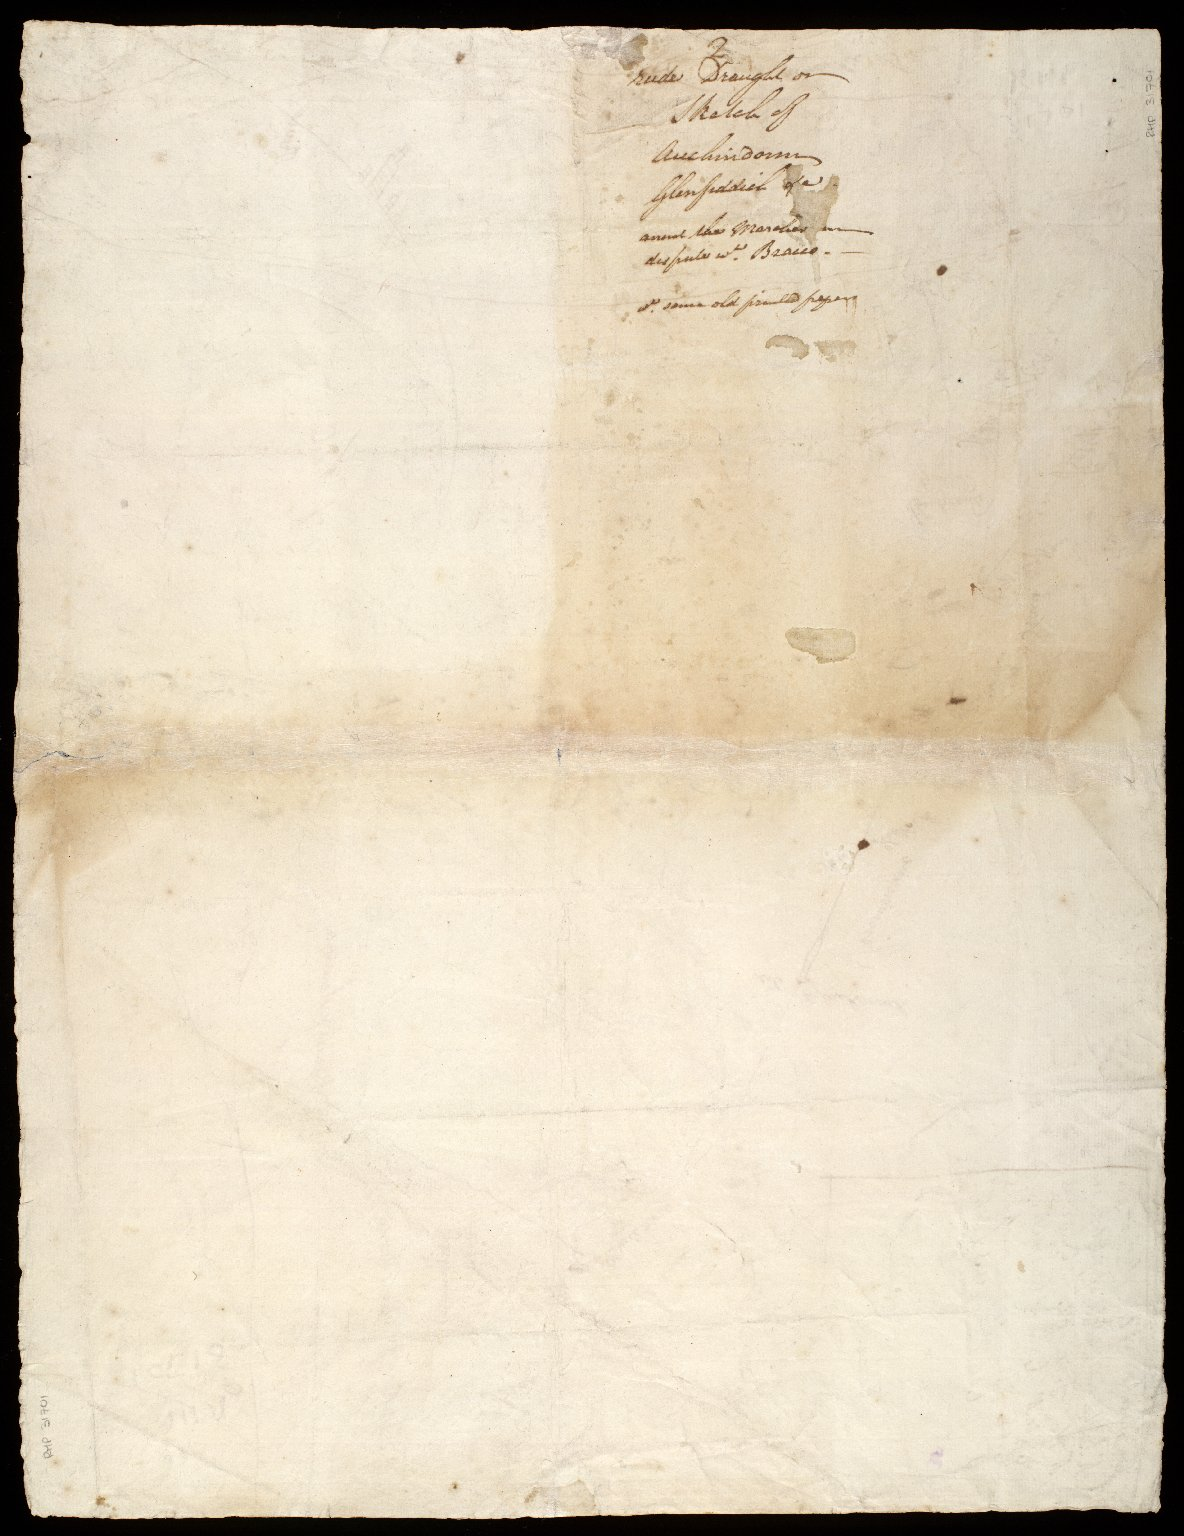 [Sketch plan of barony of Auchindown, relative to march dispute with Lord Braco] [2 of 2]